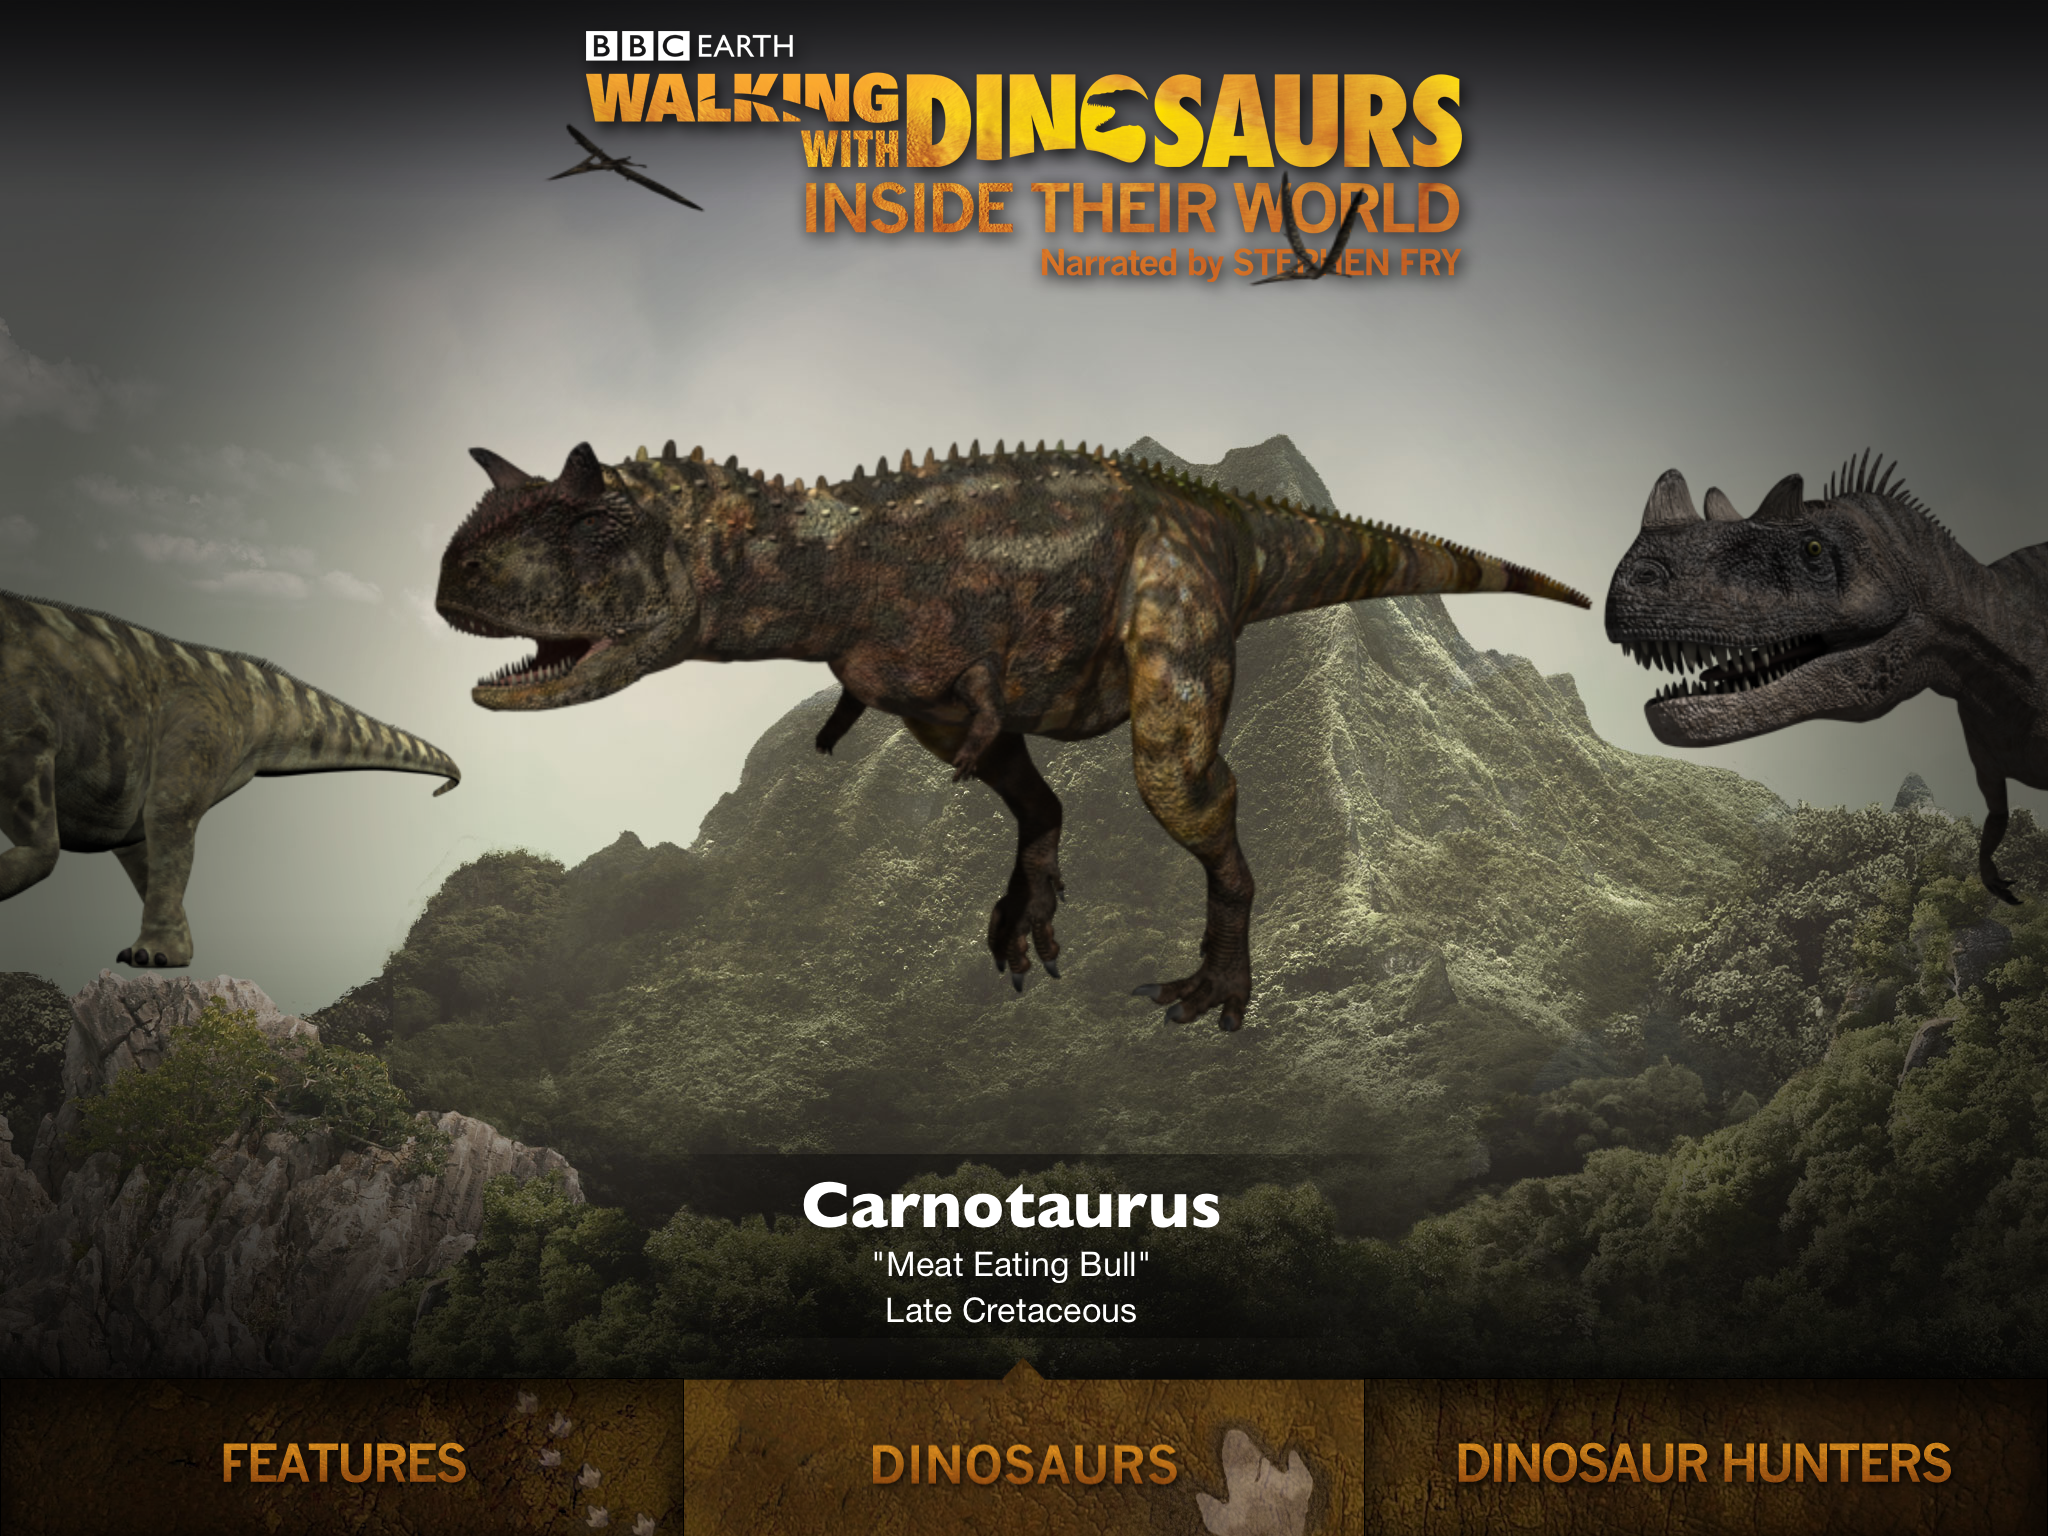 BBC Earth Walking with Dinosaurs: An app review, by Awnali Mills